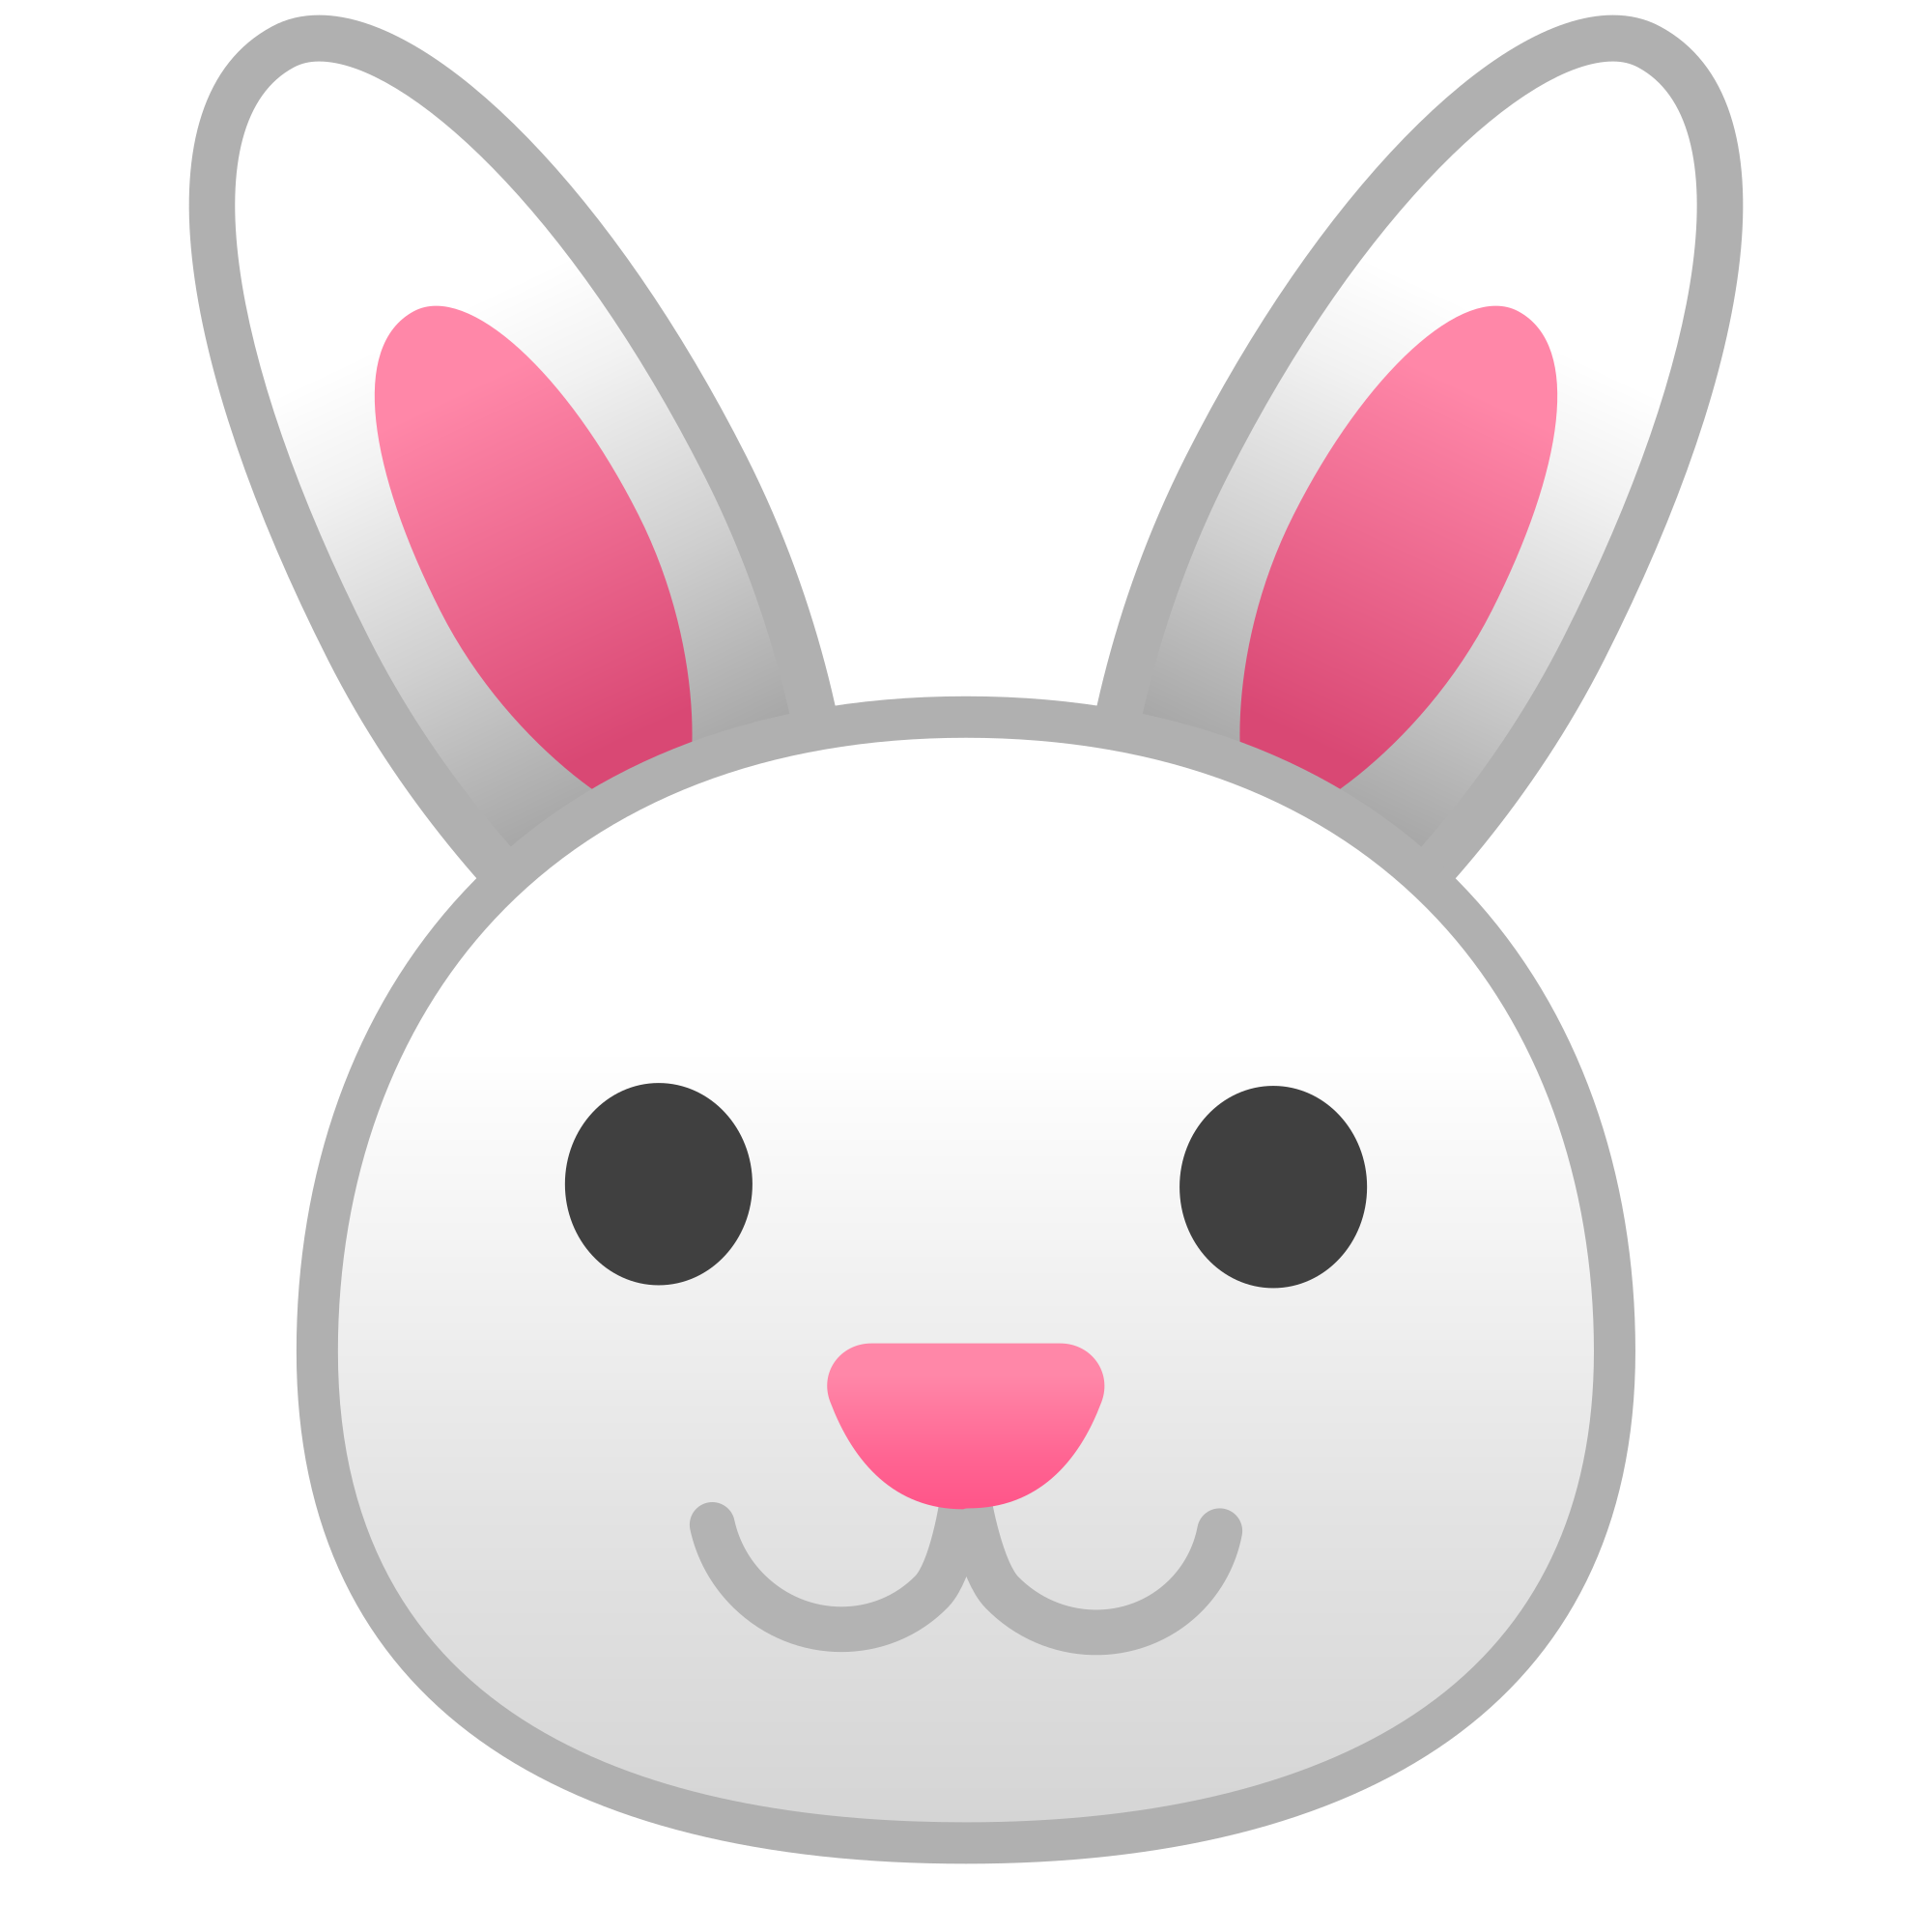 svg transparent library  easter head png. Vector emojis bunny